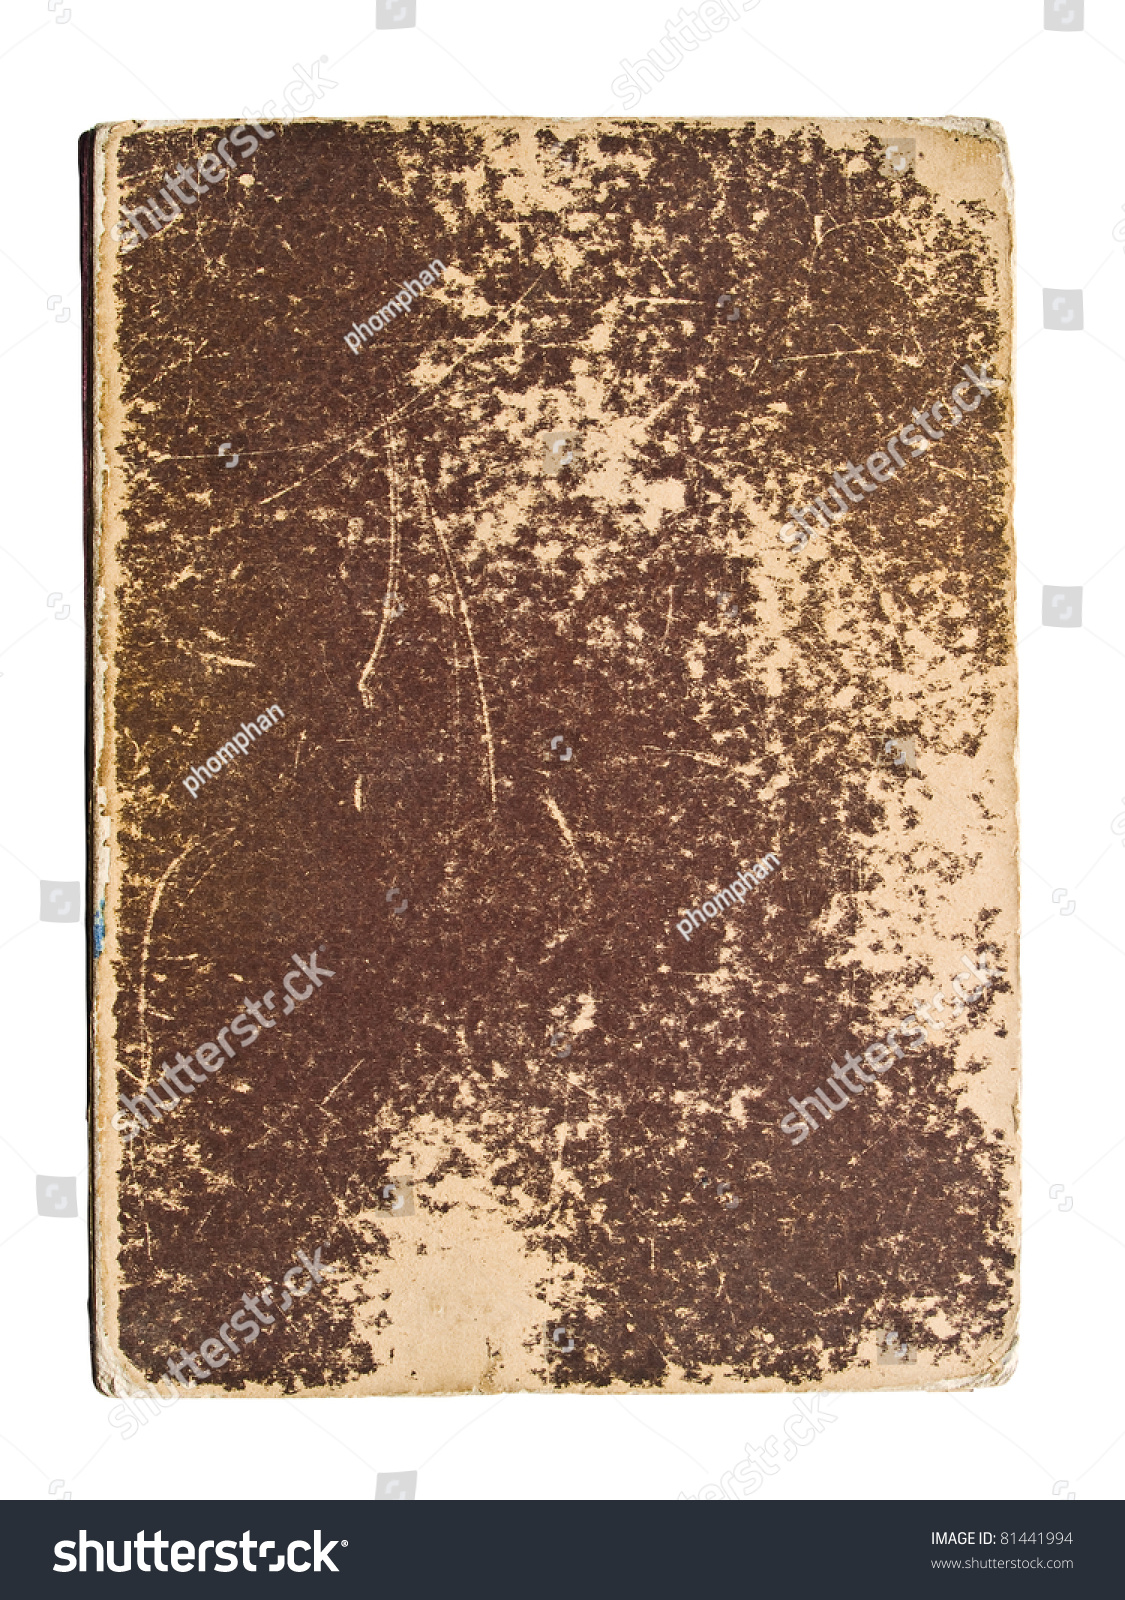 Book Cover White Background : Old book cover on a white background stock photo